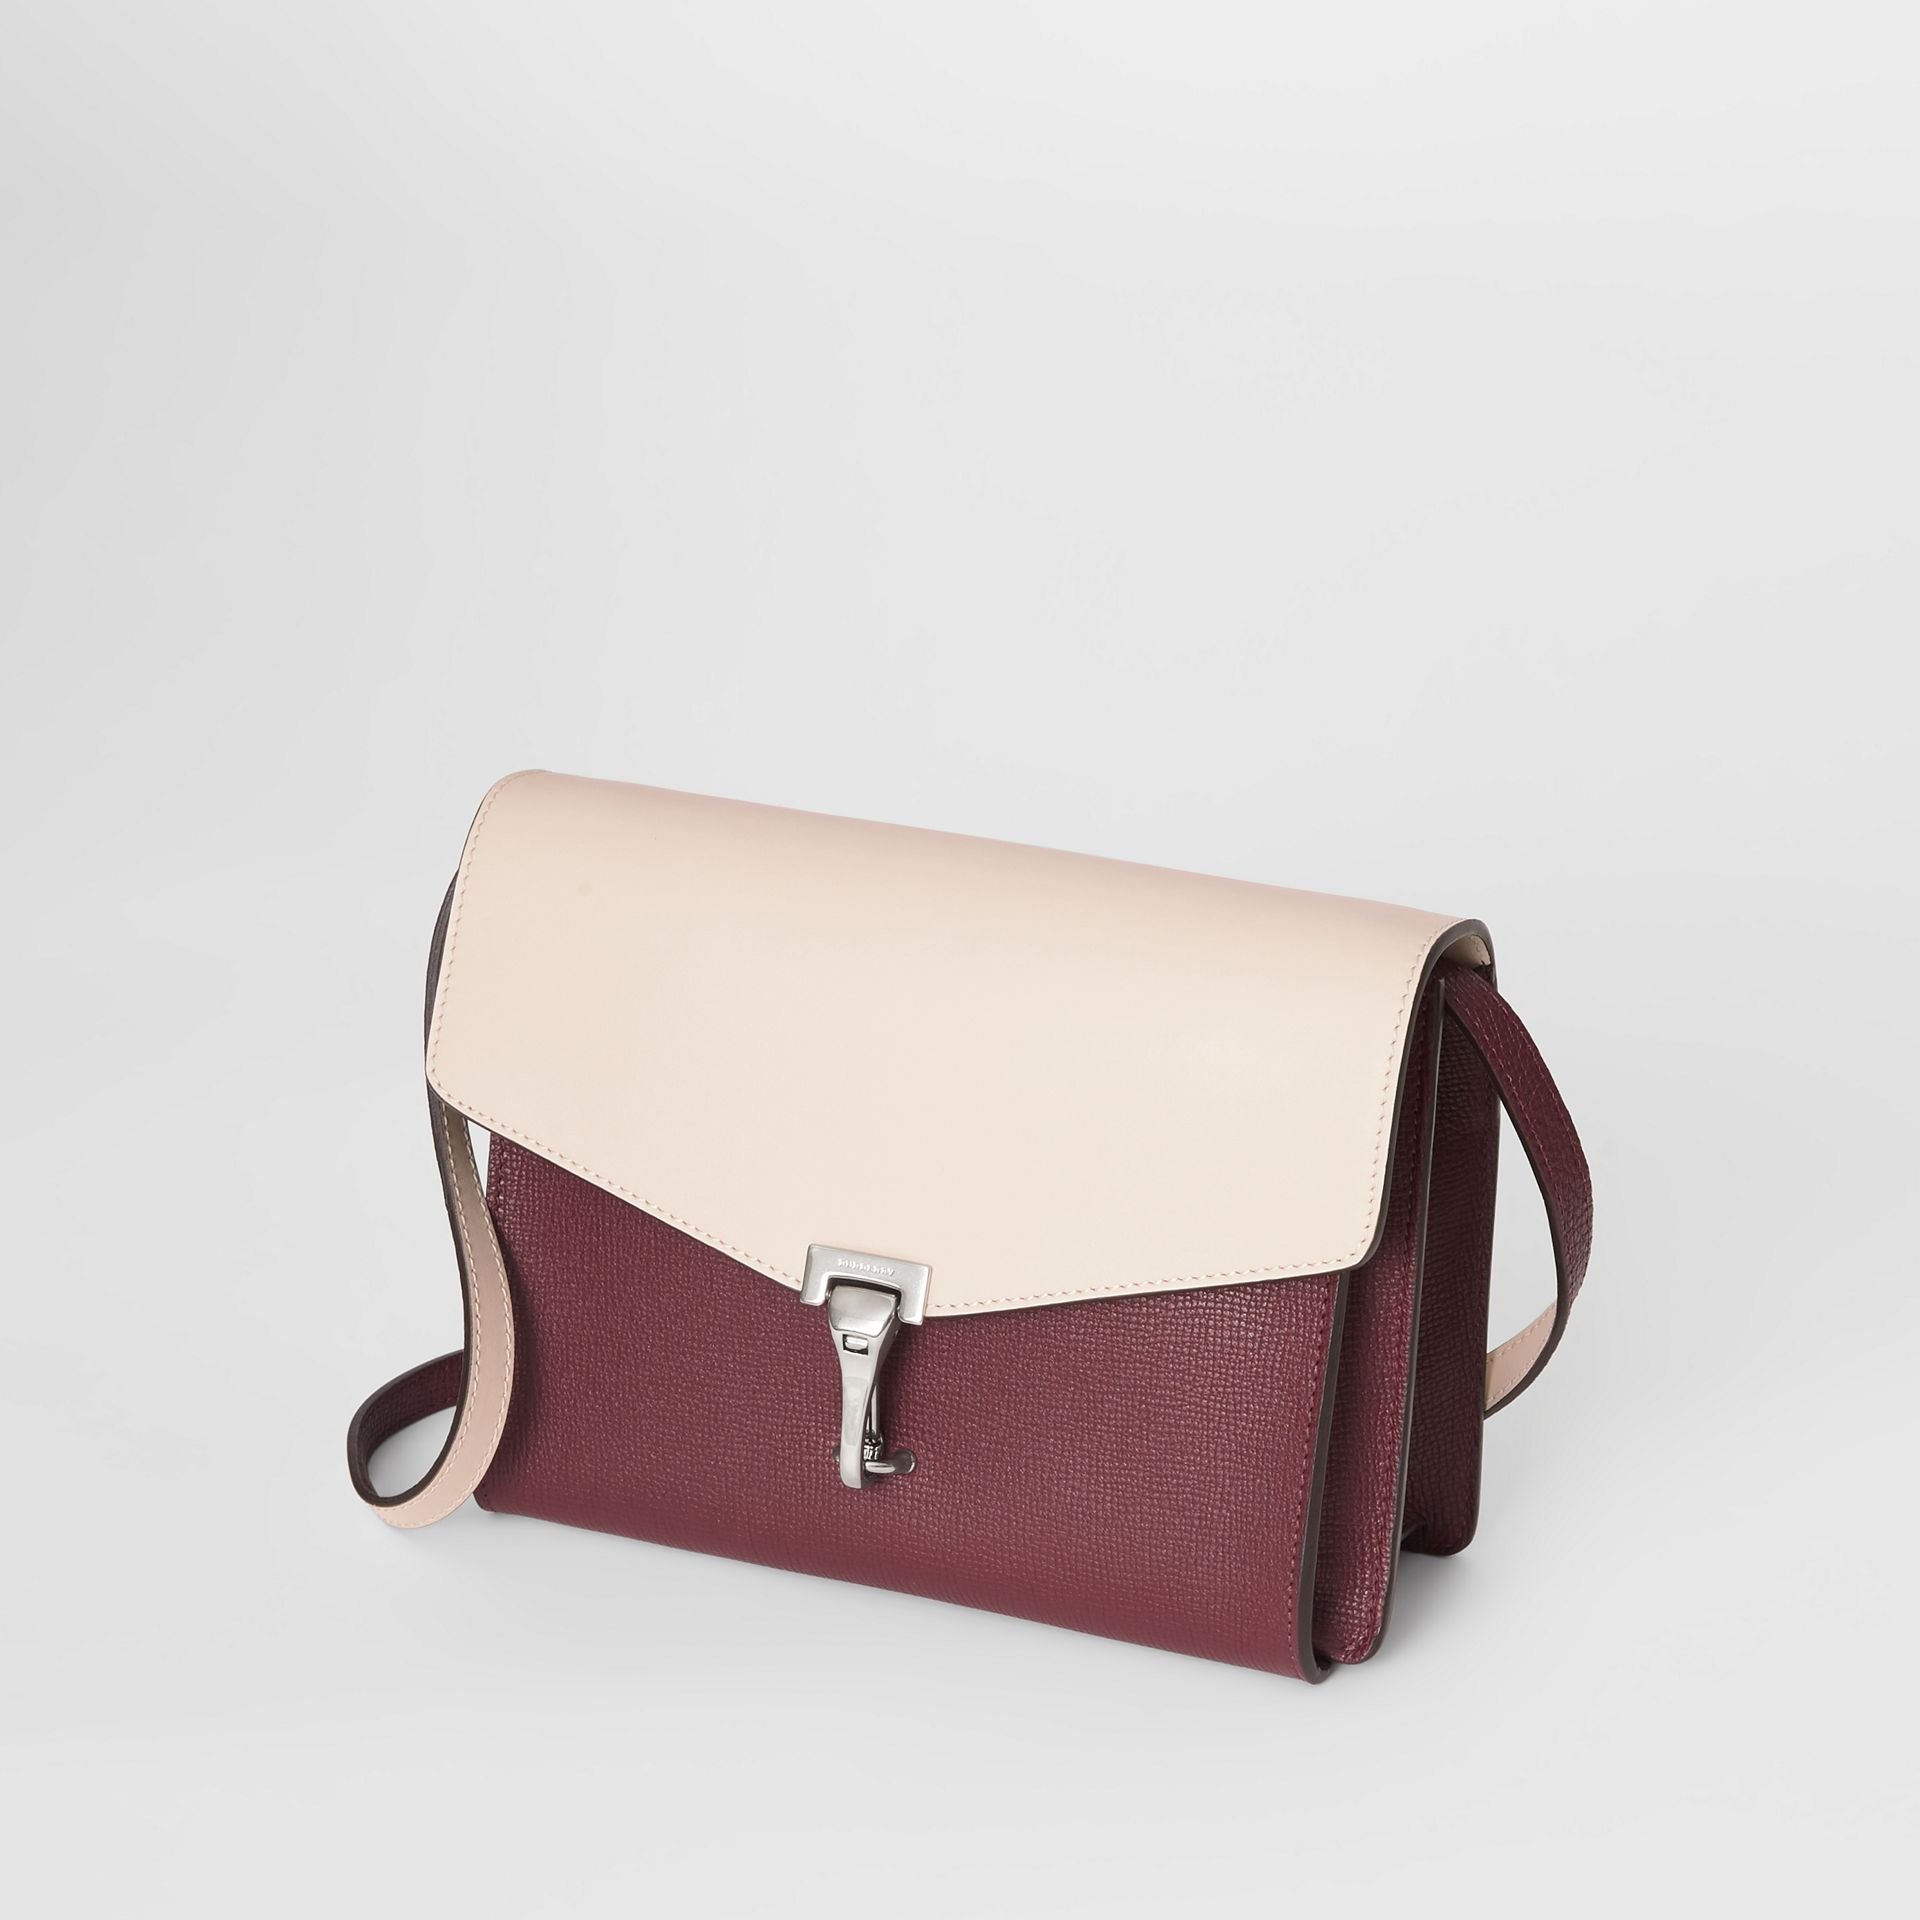 Two-tone Leather Crossbody Bag in Mahogany Red/limestone - Women | Burberry Hong Kong - gallery image 4